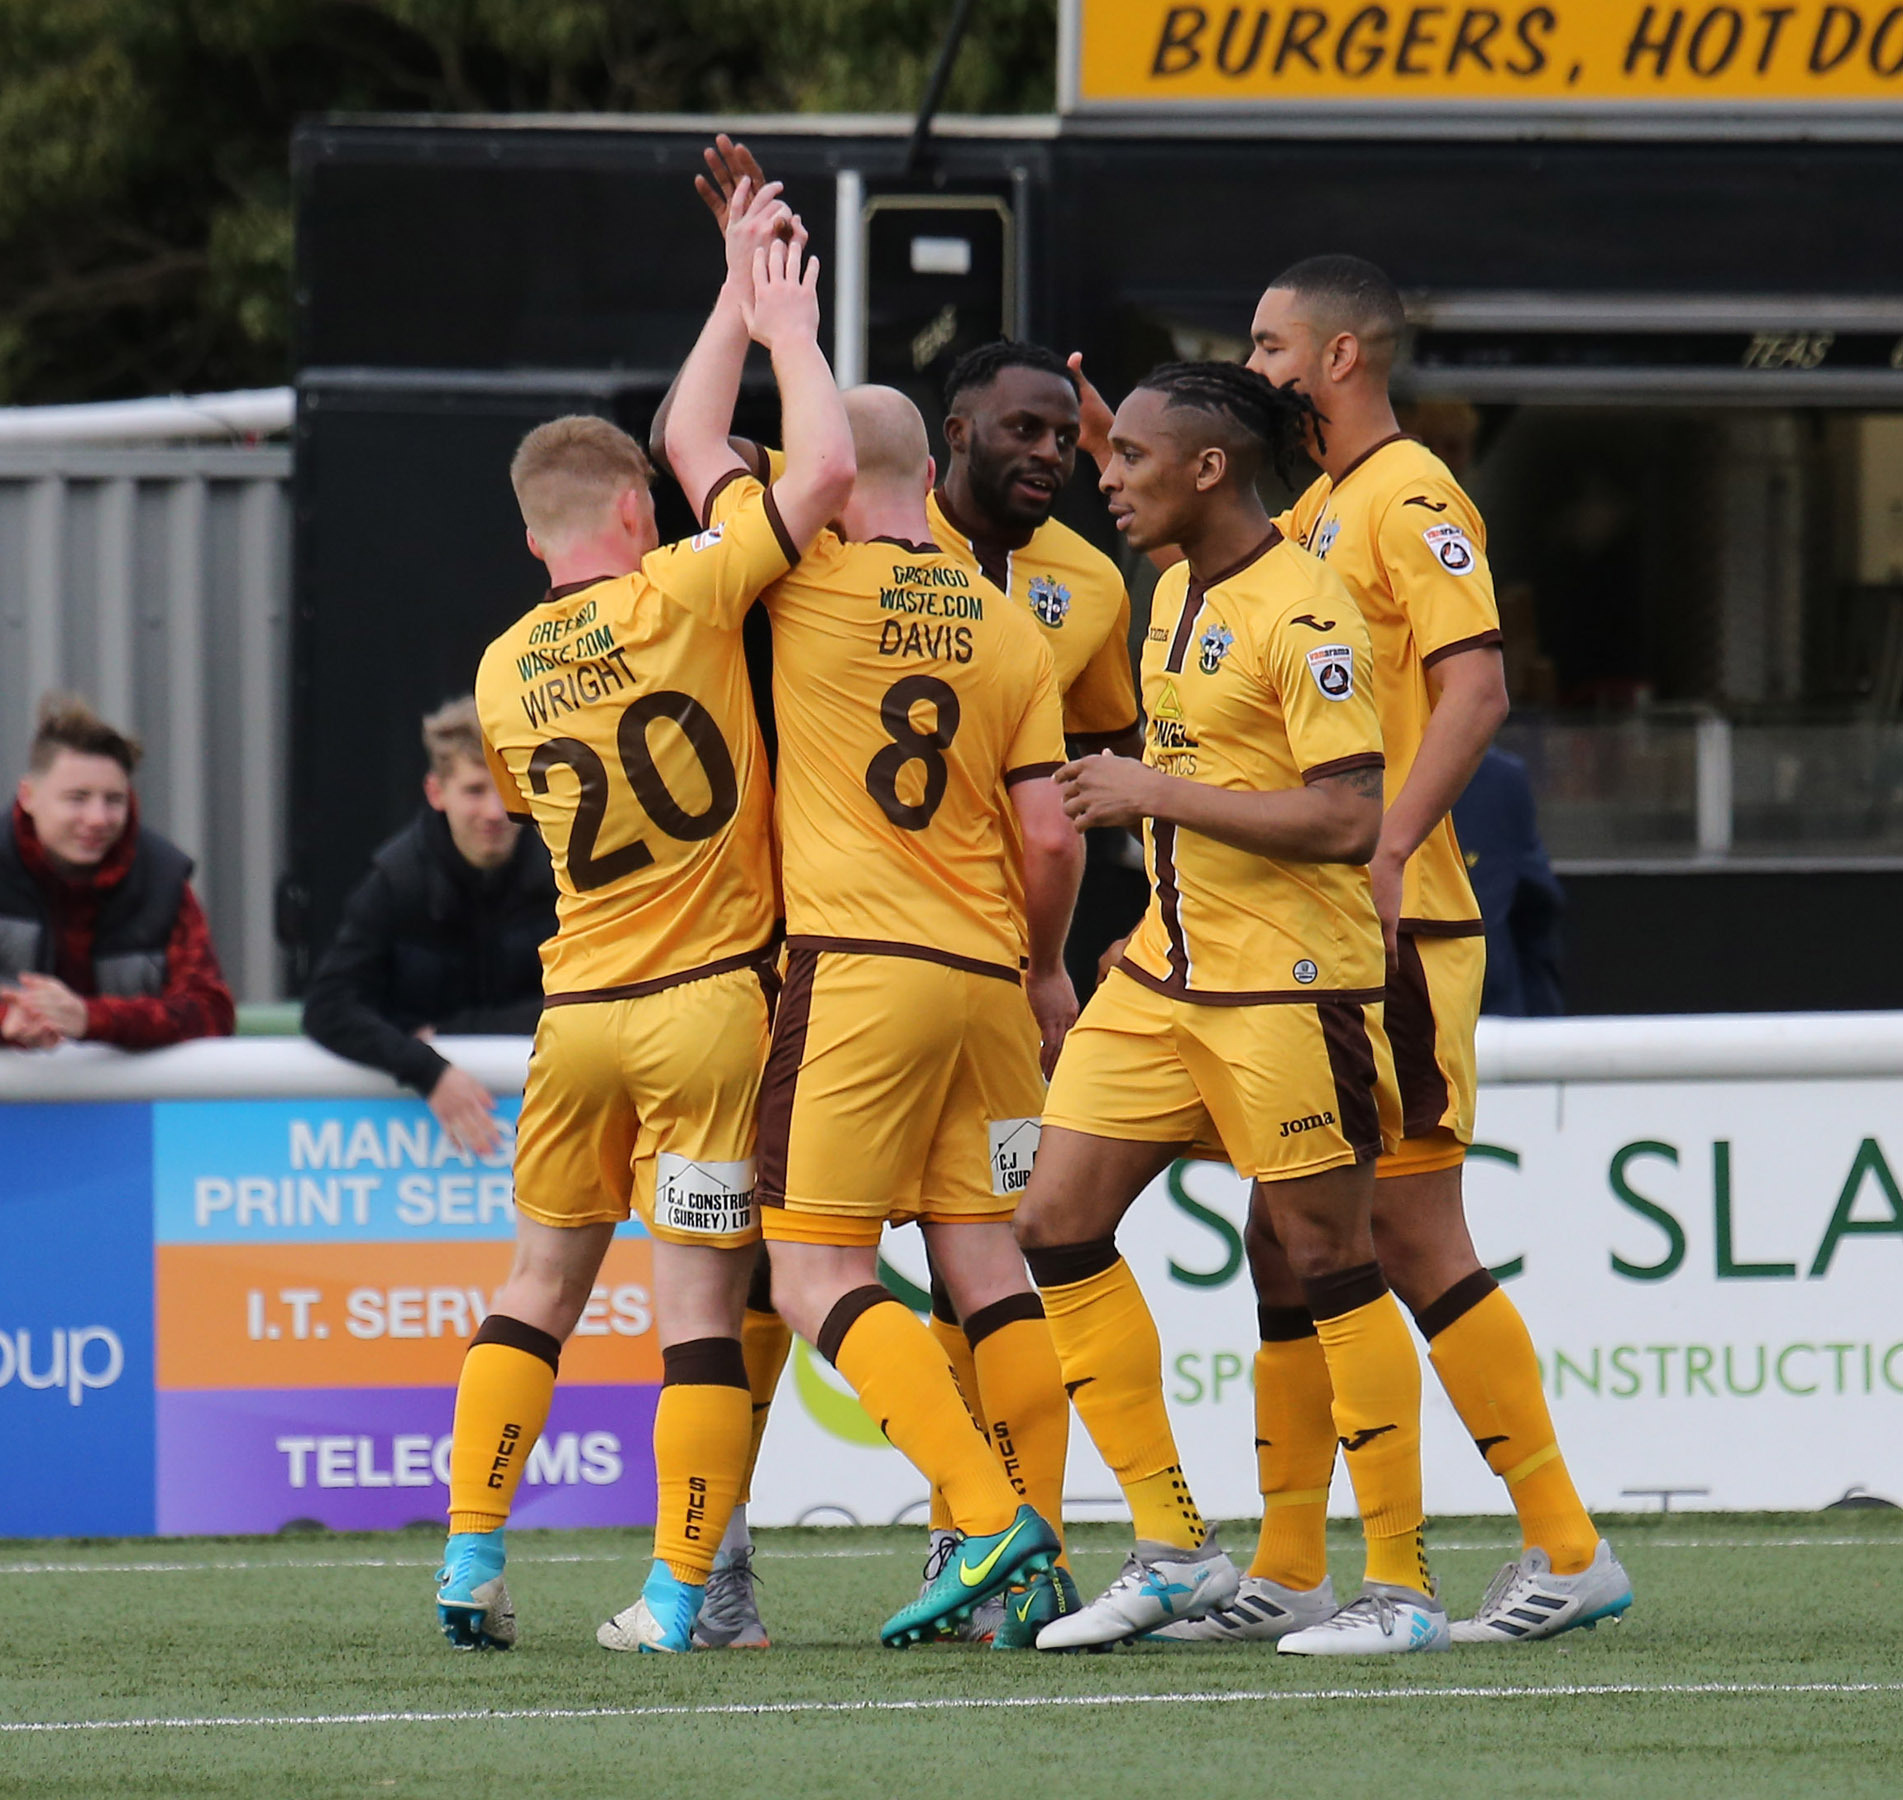 Sutton United players celebrating. Photo: Paul Loughlin